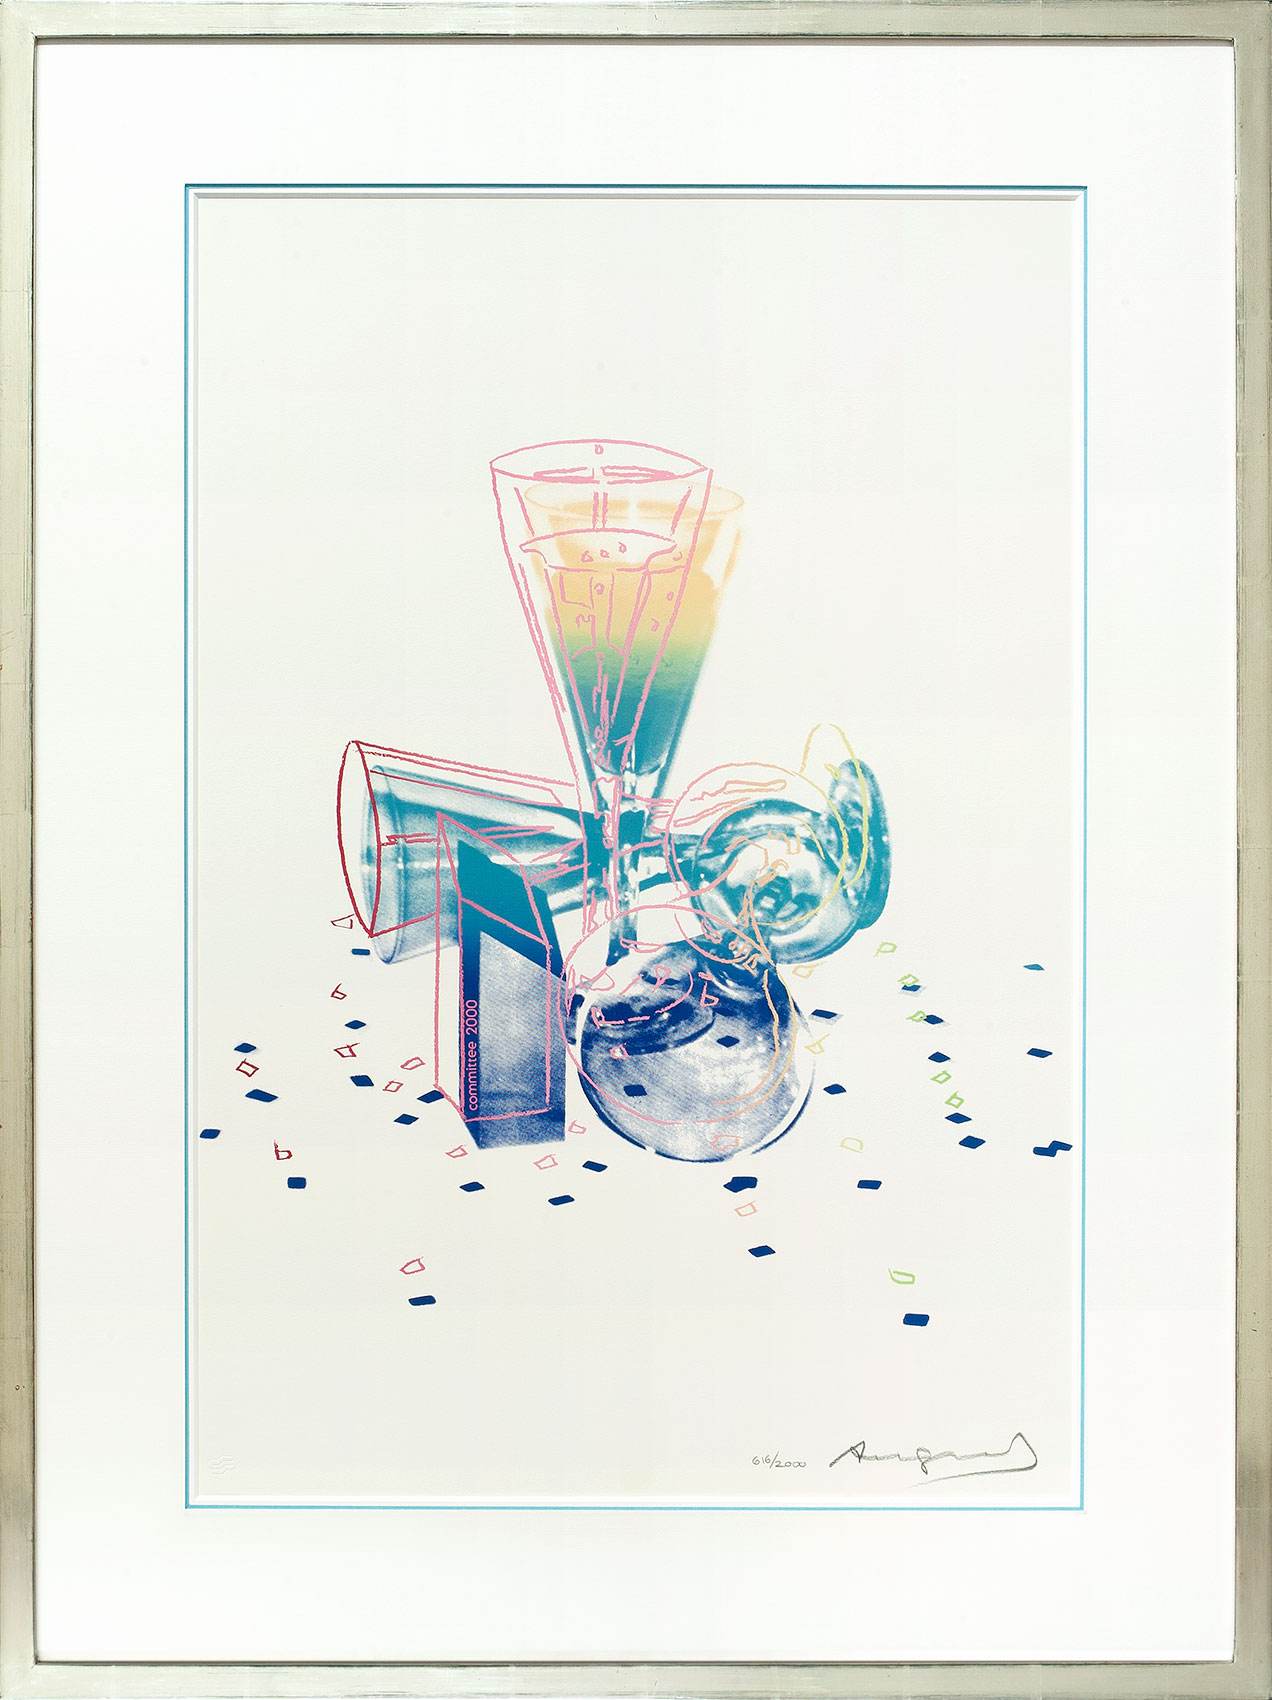 Andy Warhol, Champagner 2000, Galerie Française